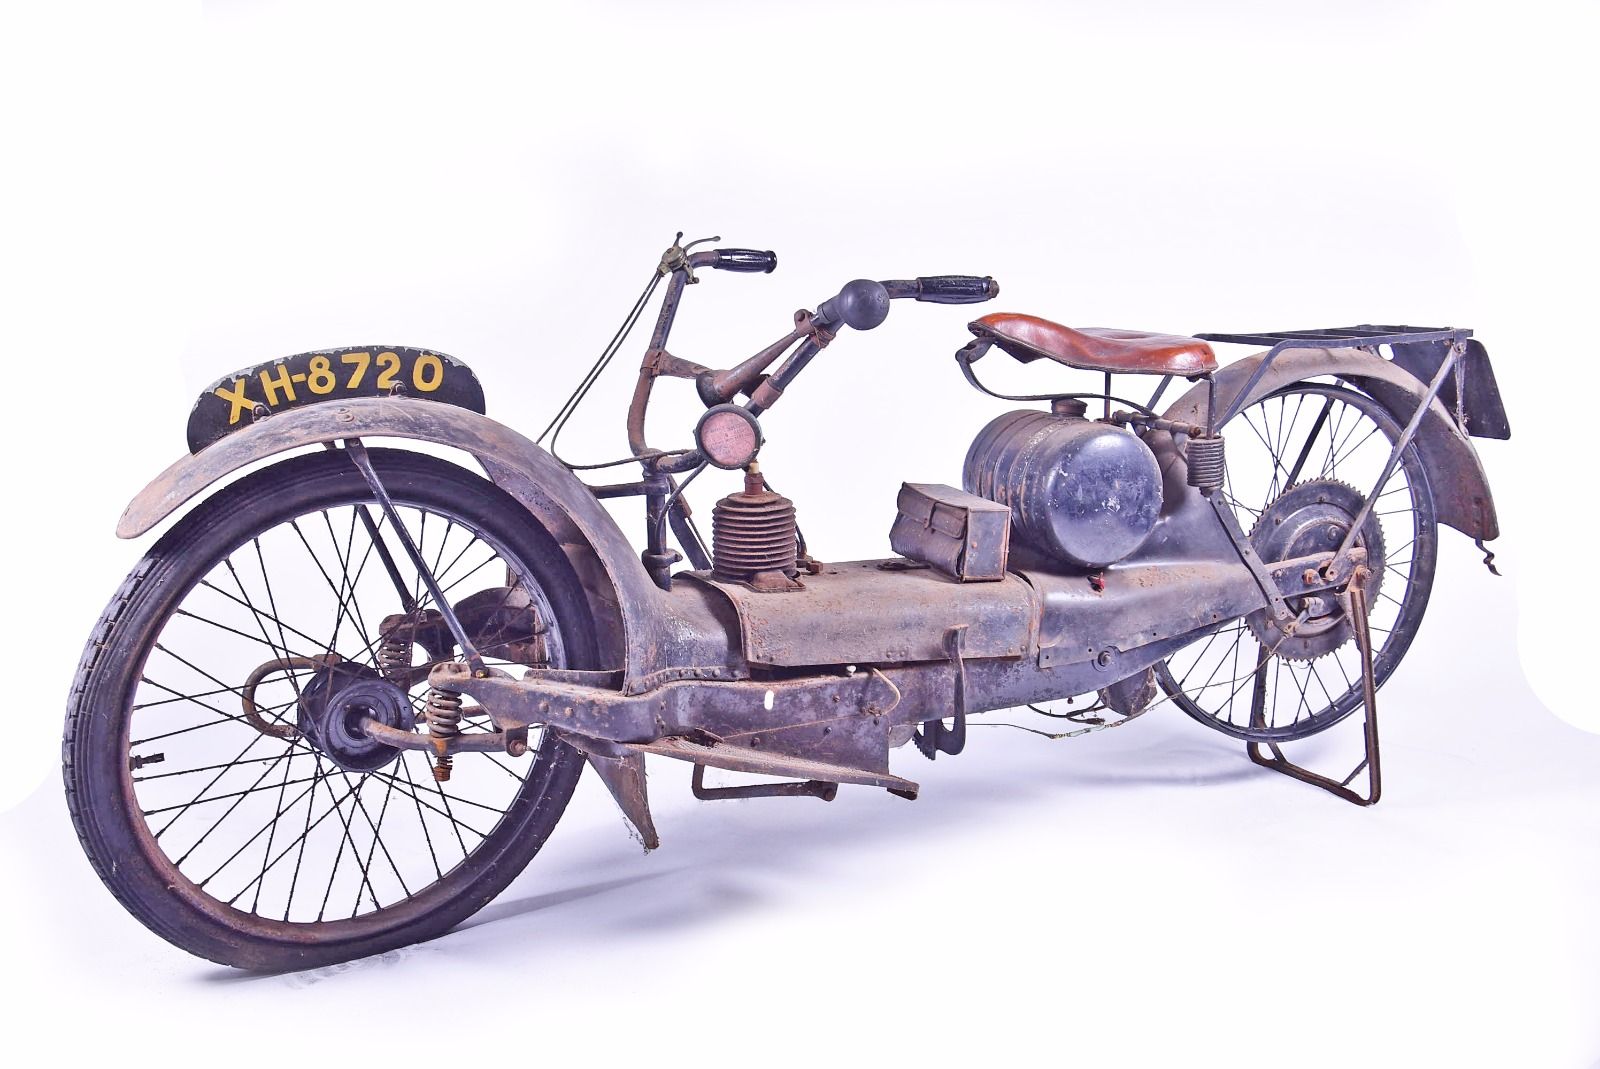 A 1920's Ner-A-Car motorcycle, sold for £7,500